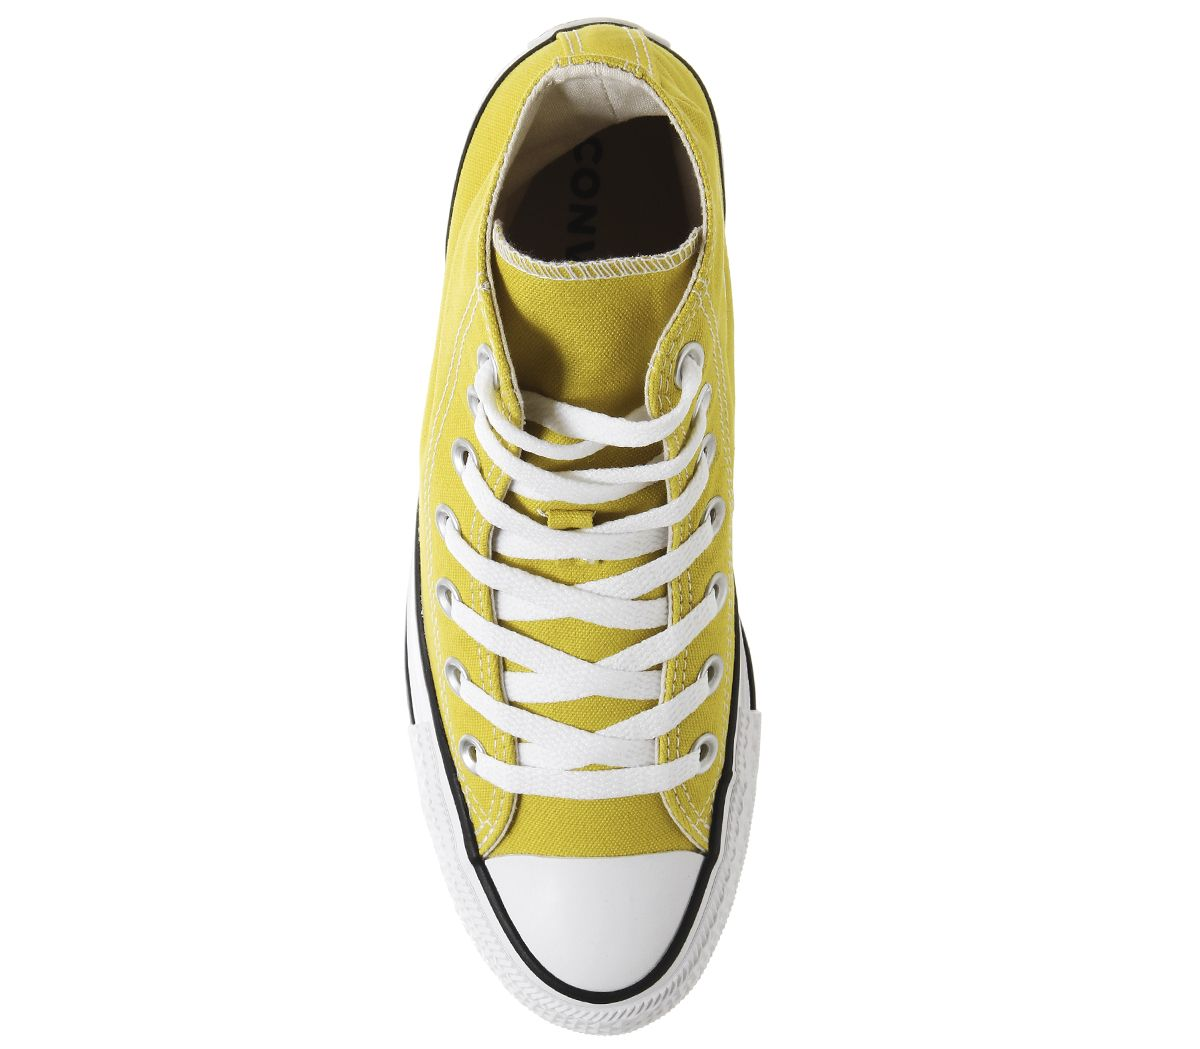 Homme-Converse-Converse-All-Star-HI-Baskets-BOLD-Citron-Baskets-Chaussures miniature 7